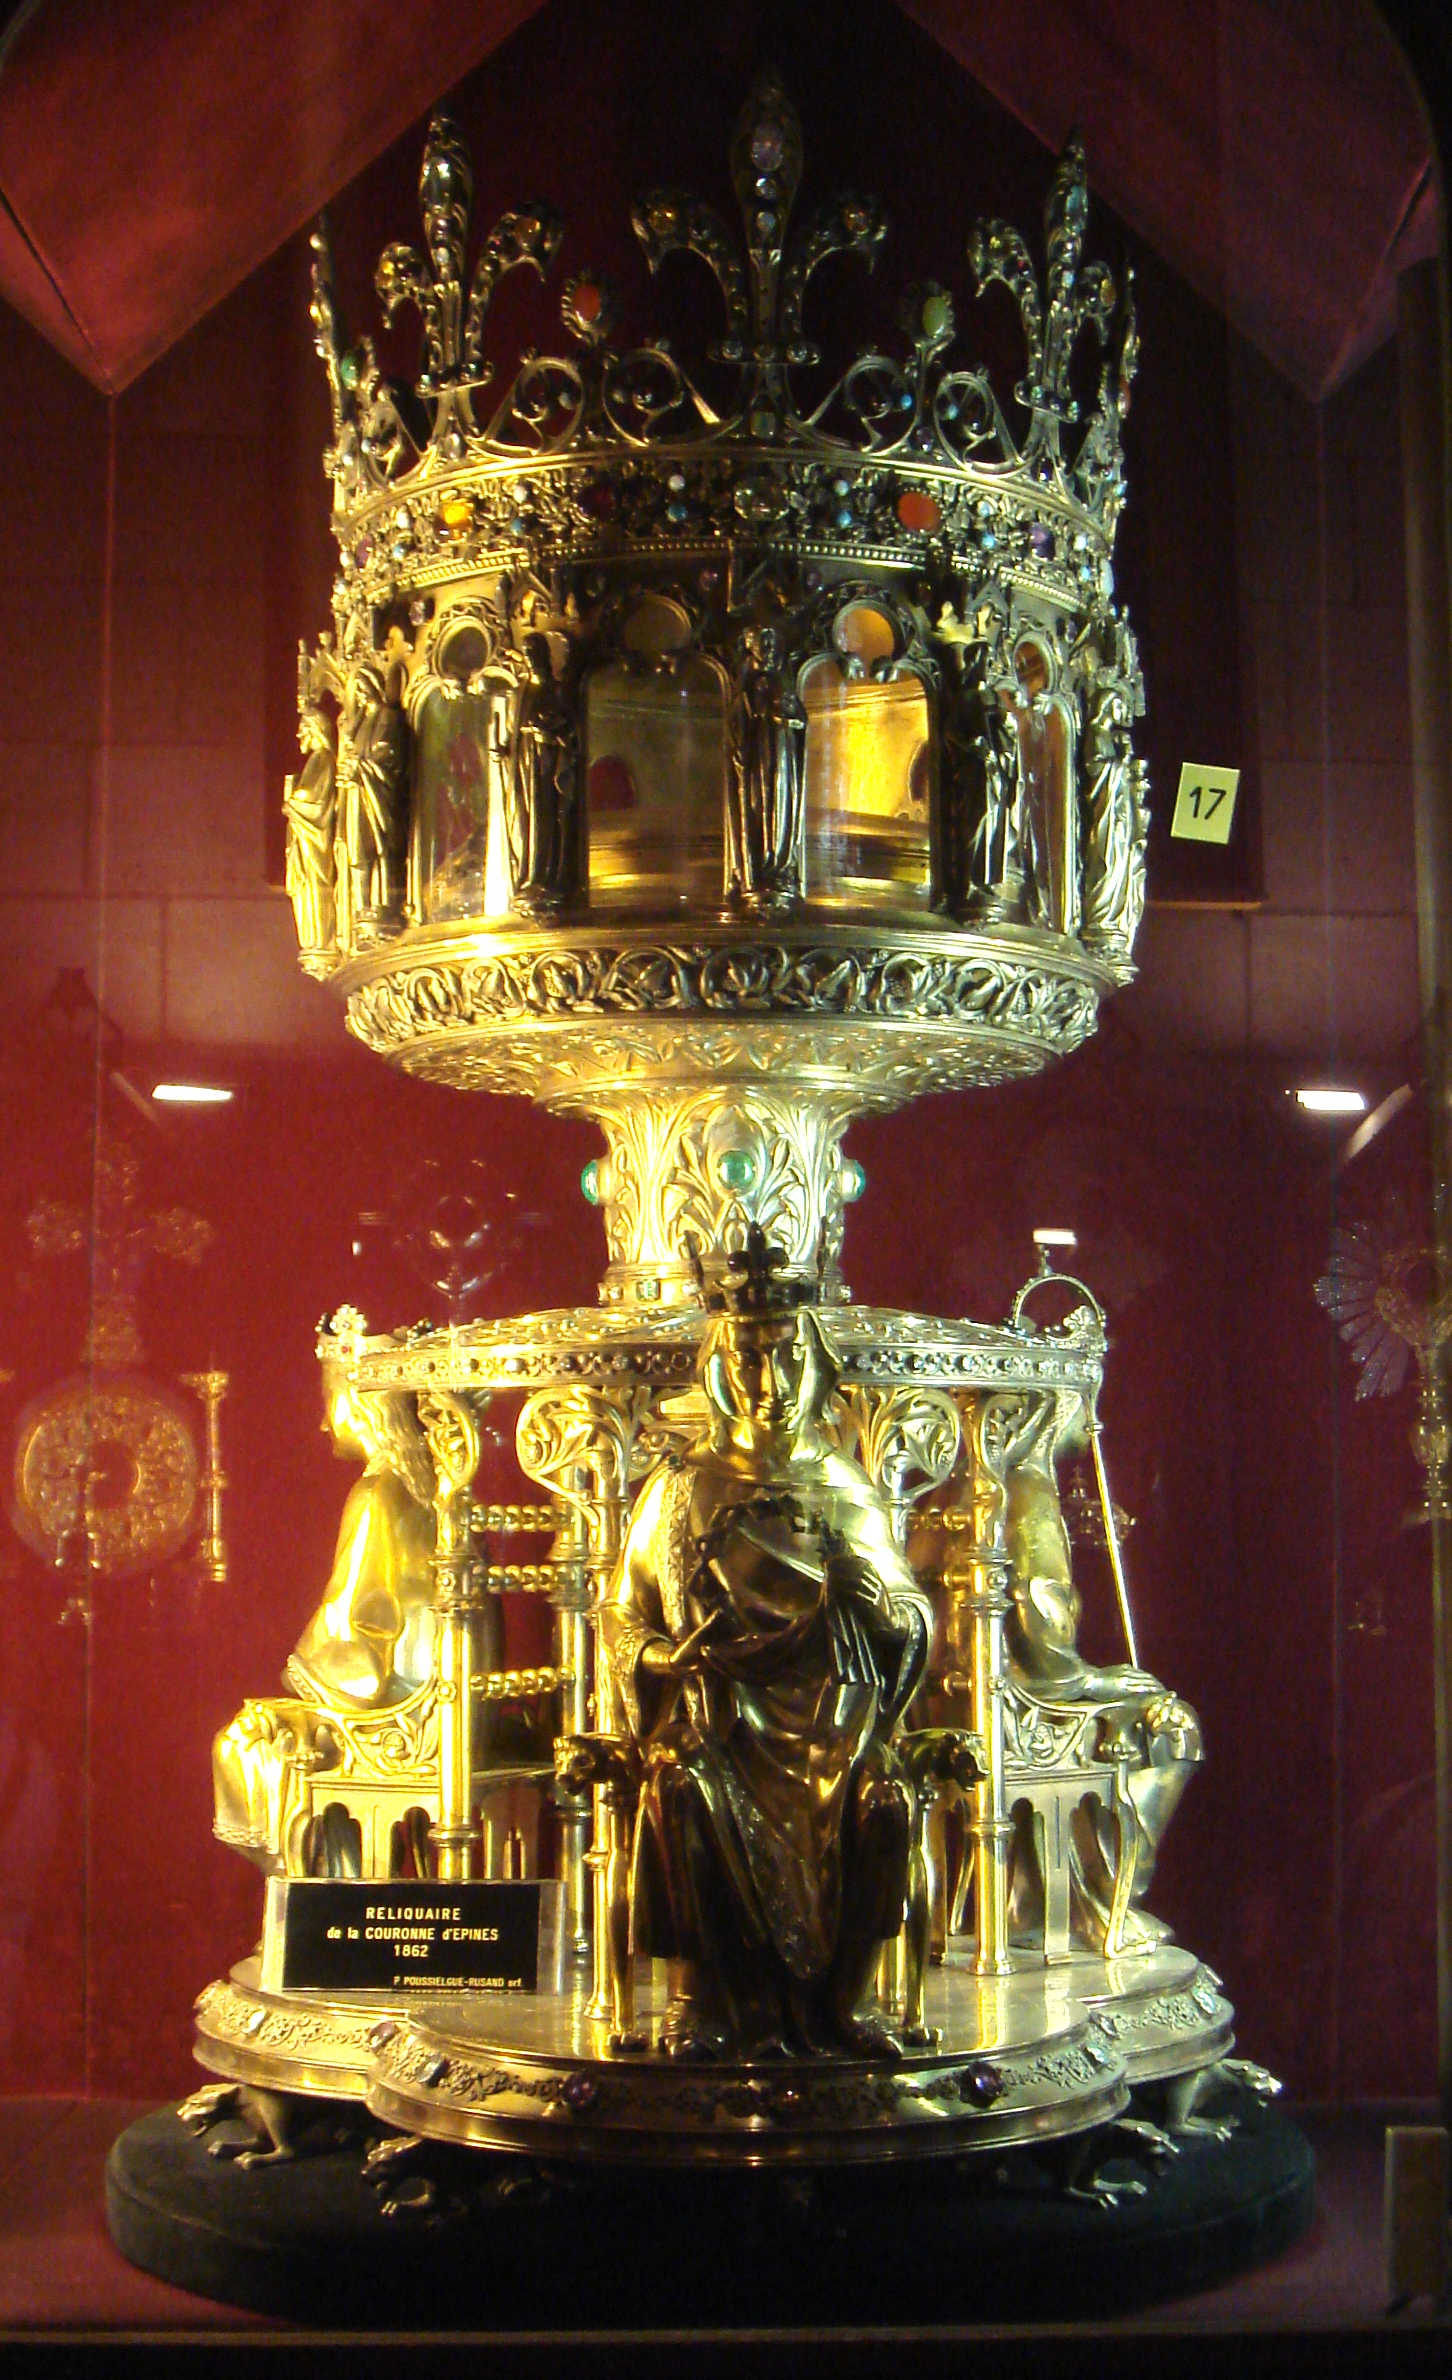 From St Peter's bones to severed heads: Christian relics on